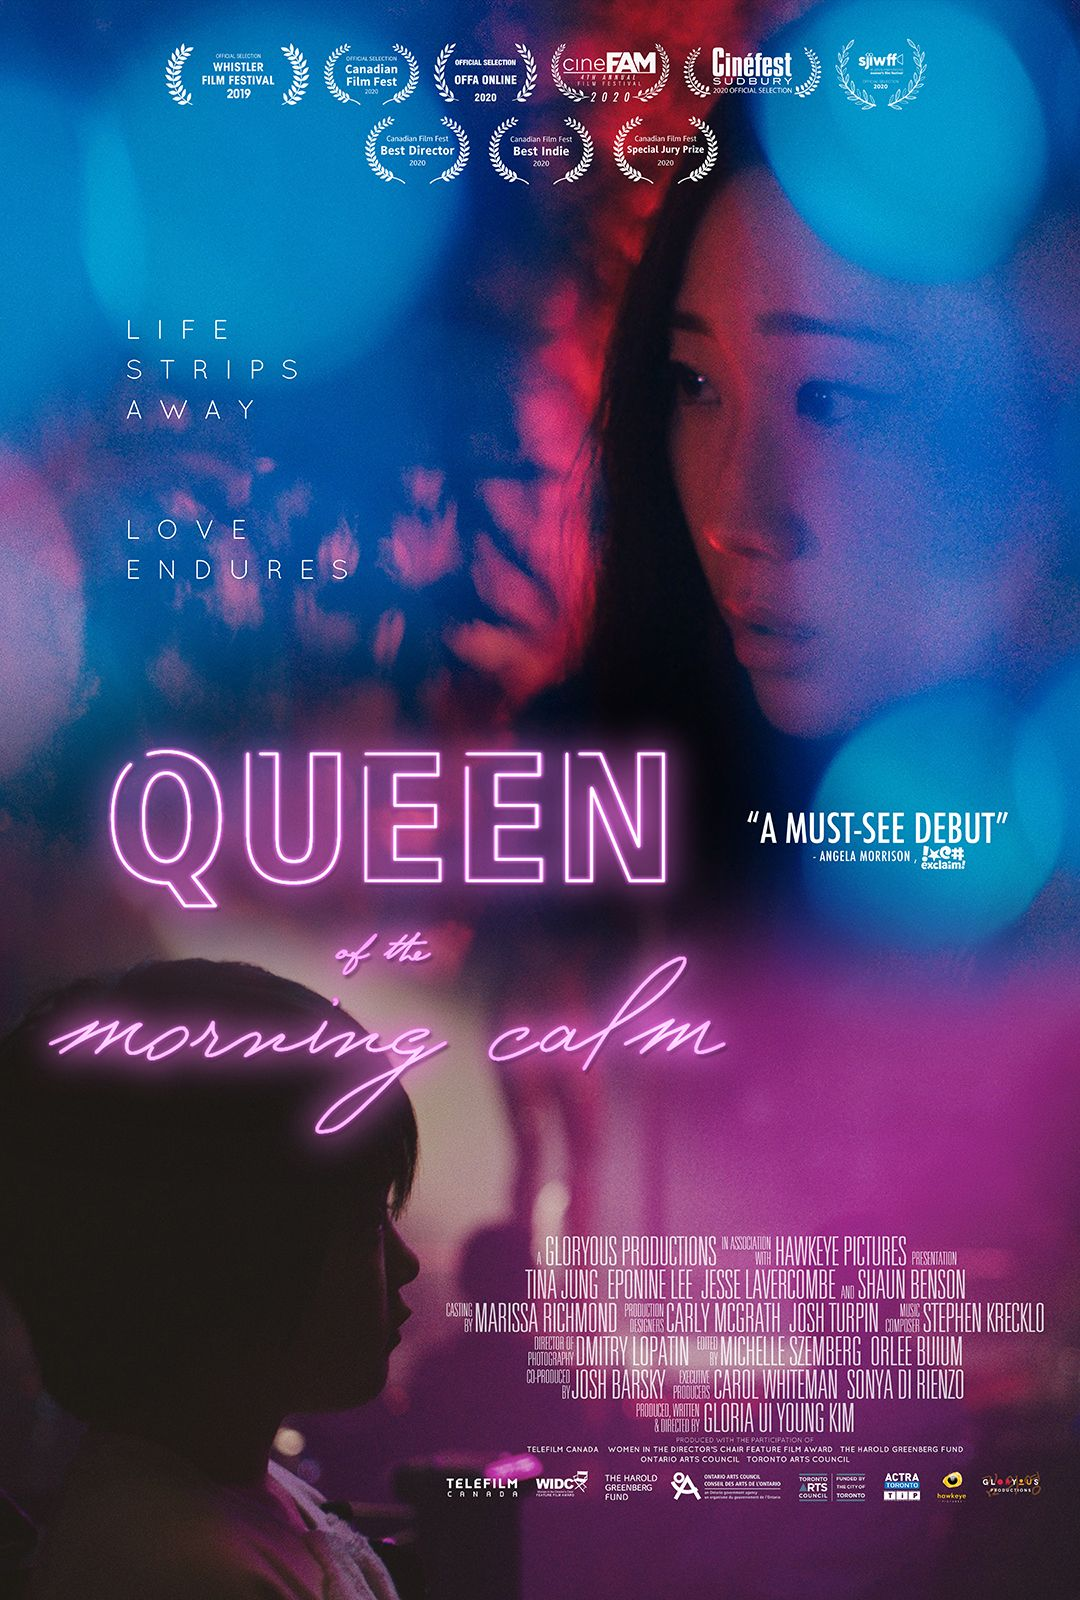 A poster with the outline of a young woman's face advertising the film Queen of the Morning Calm